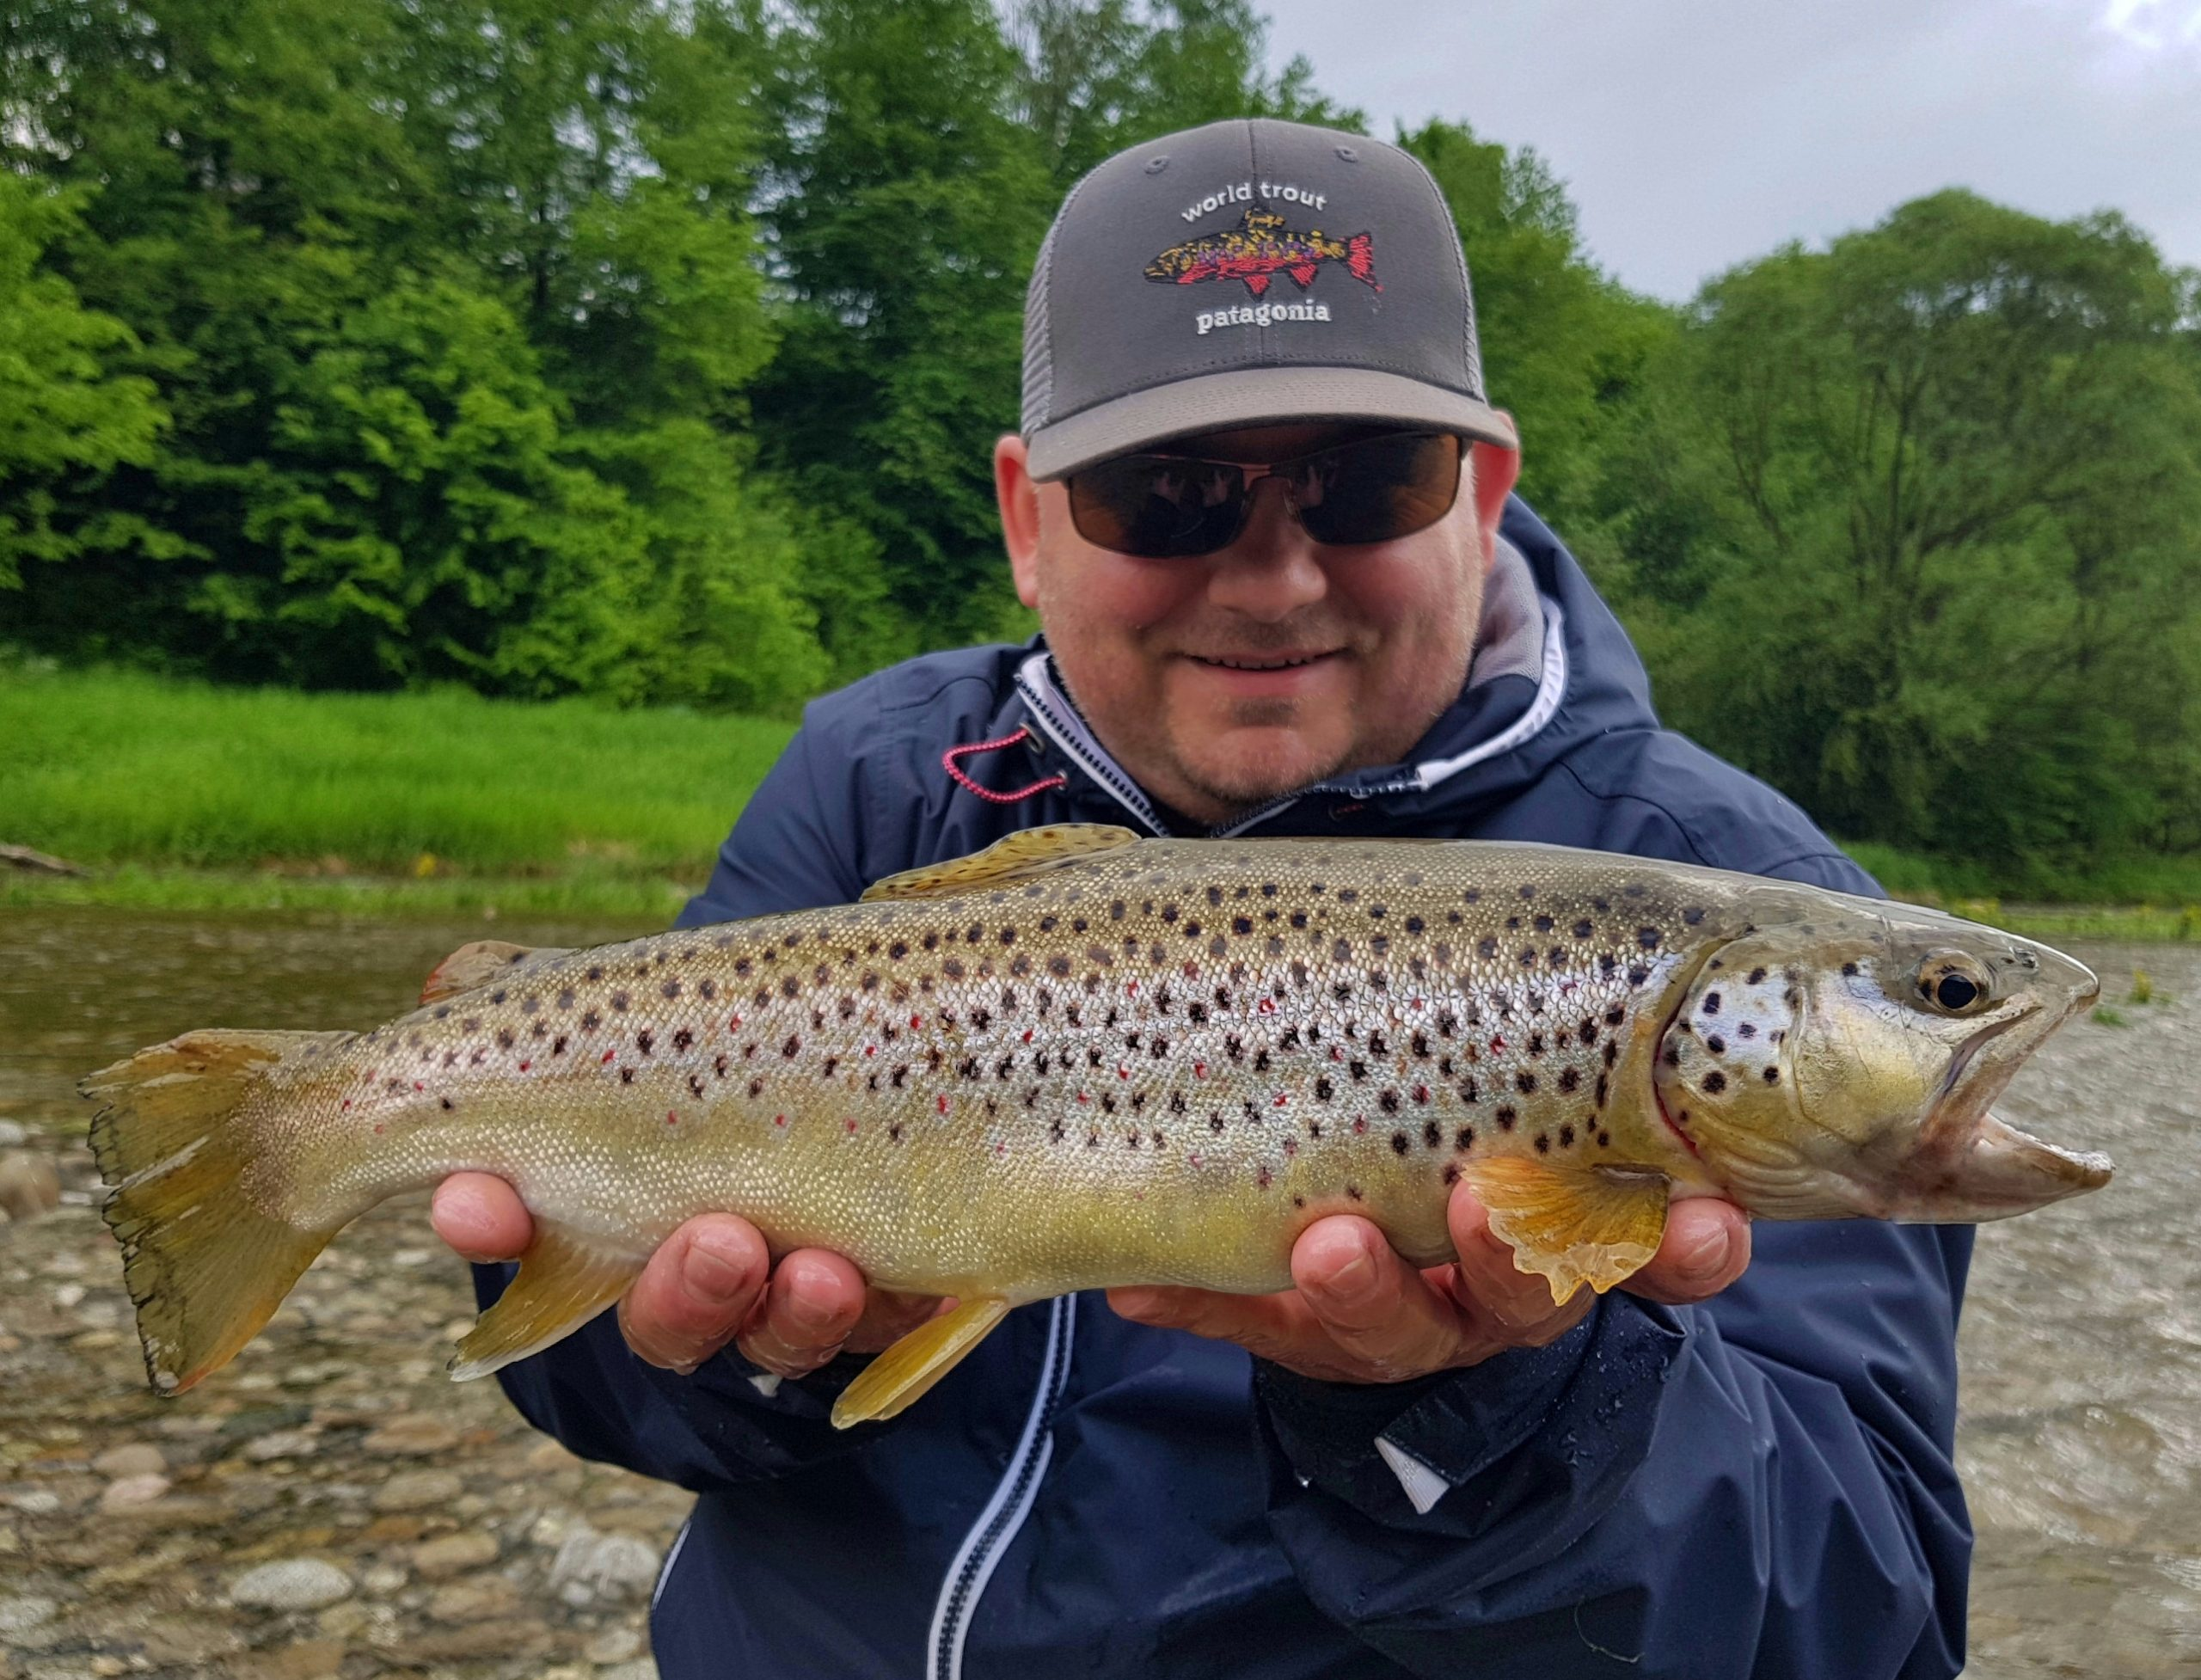 World Trout Patagonia - Dunajec River Poland and Brown Trout in the net